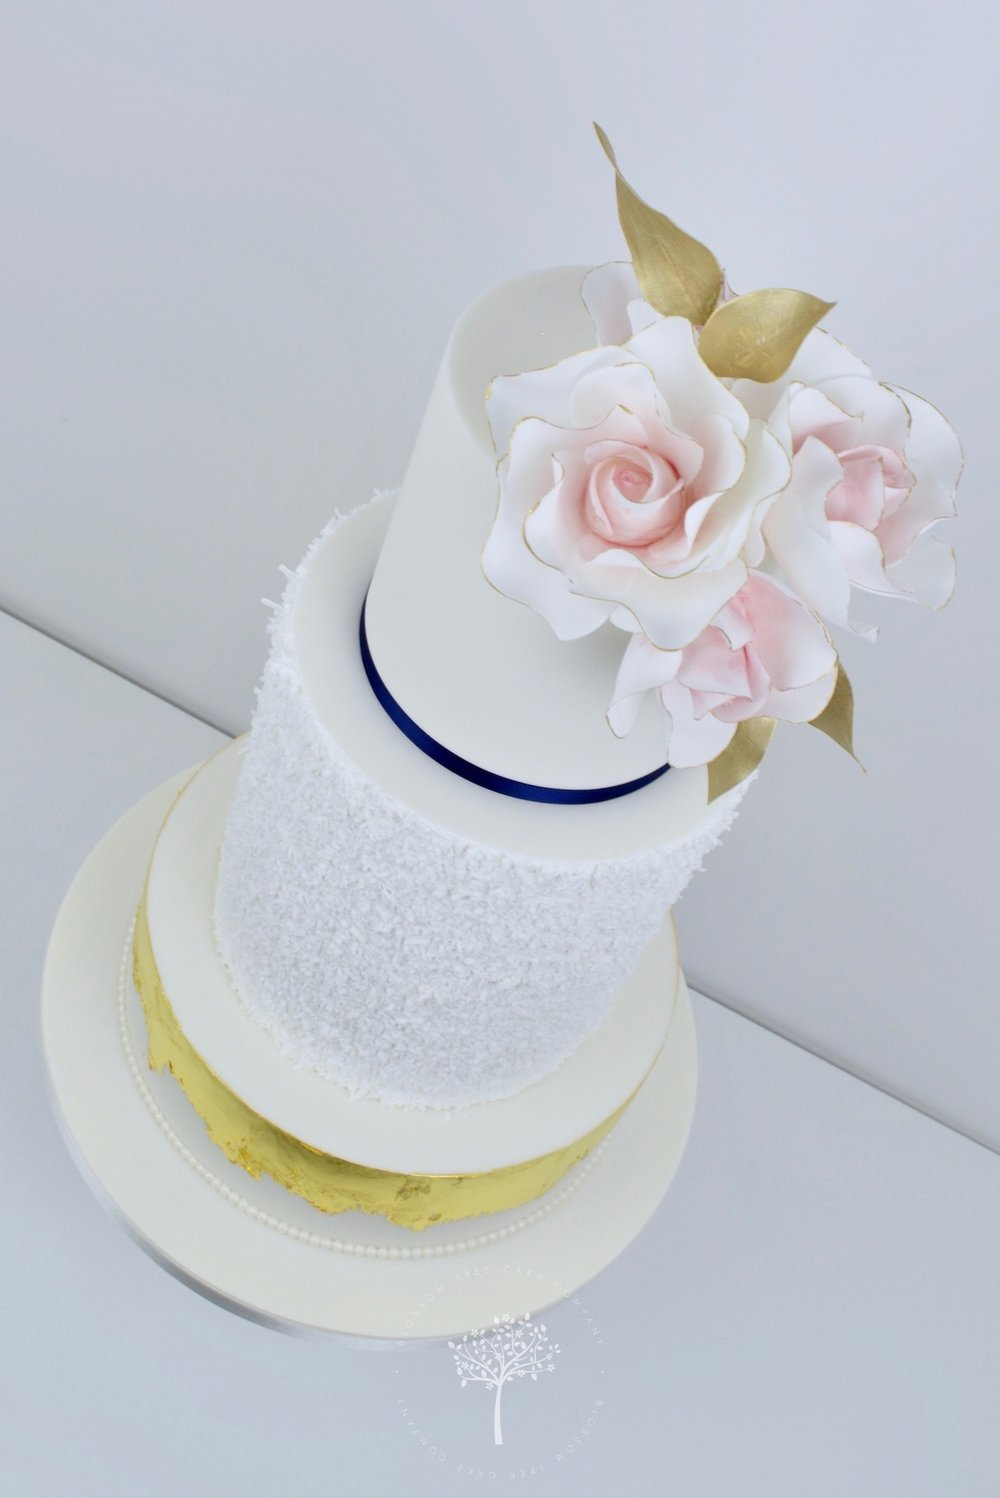 Blush Roses and Gold Leaf wedding cake by Blossom Tree Cake Company Harrogate North Yorkshire - anglejpg.jpg